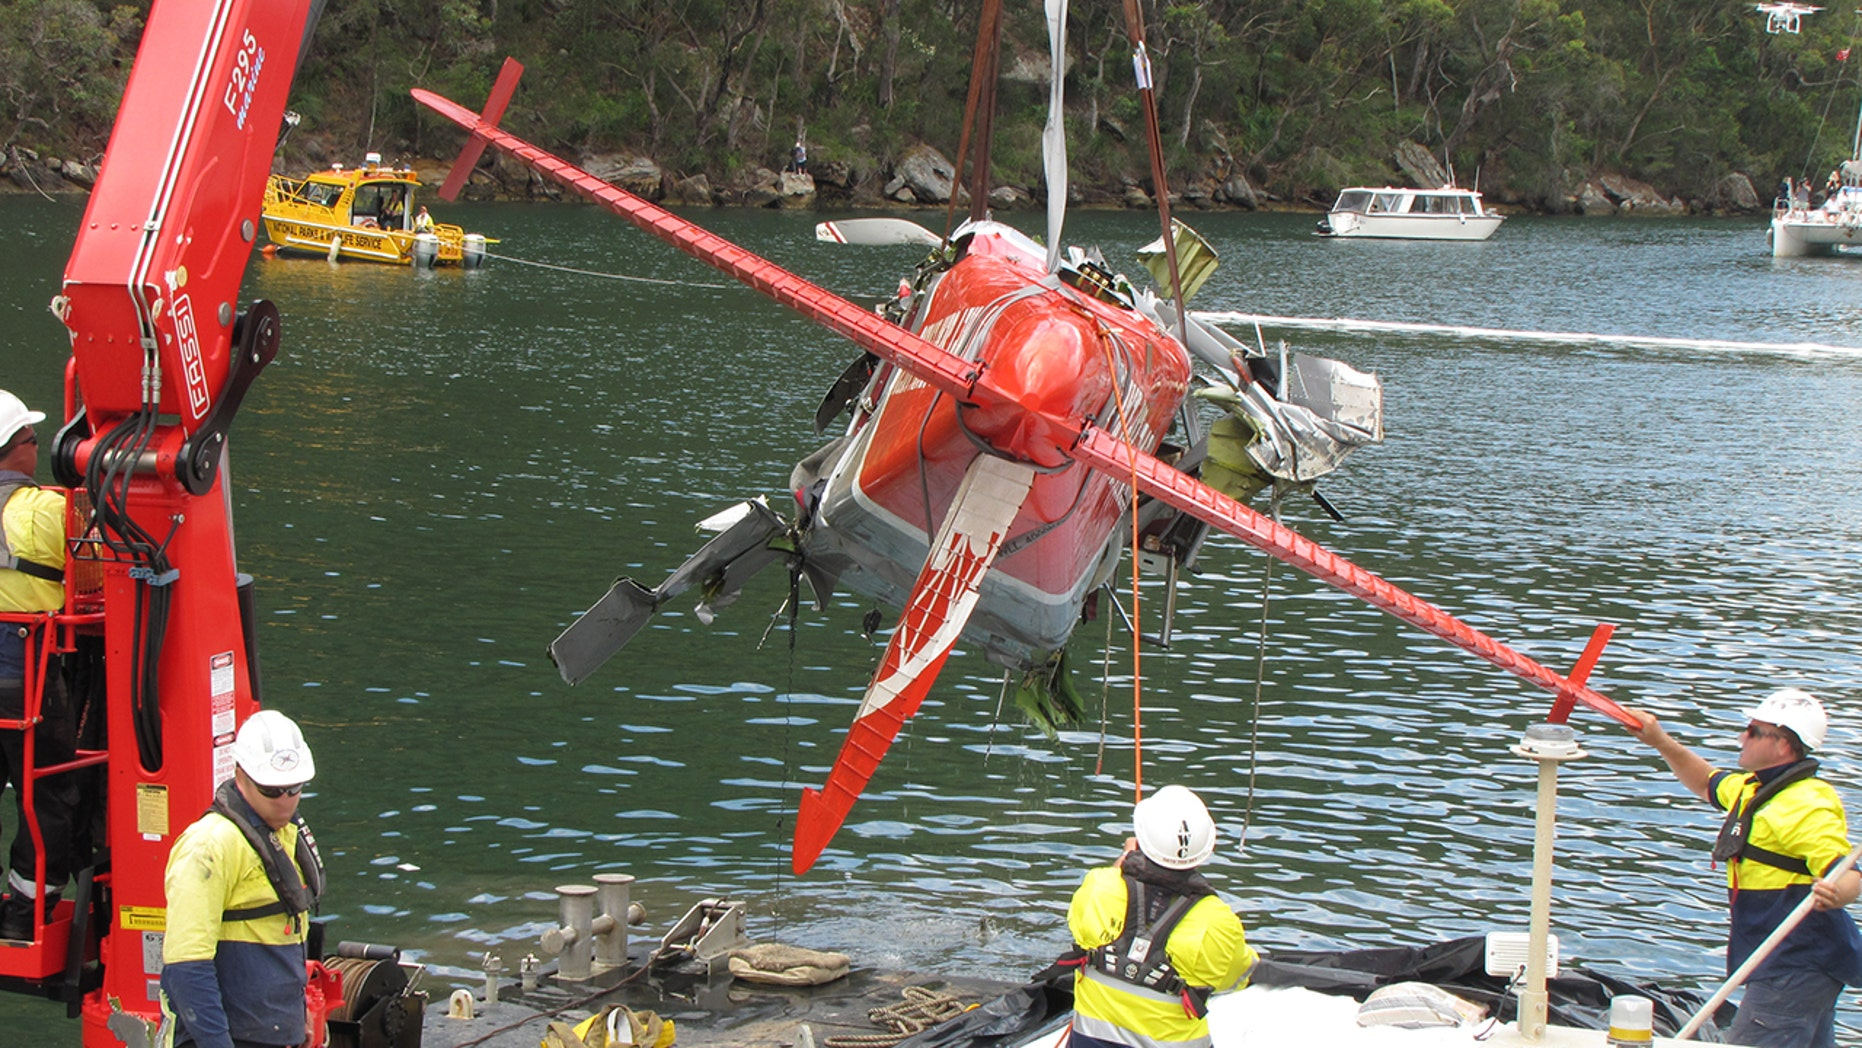 The seaplane crashed north of Sydney on Dec. 31, 2017, killing a British family of 5 and the pilot.